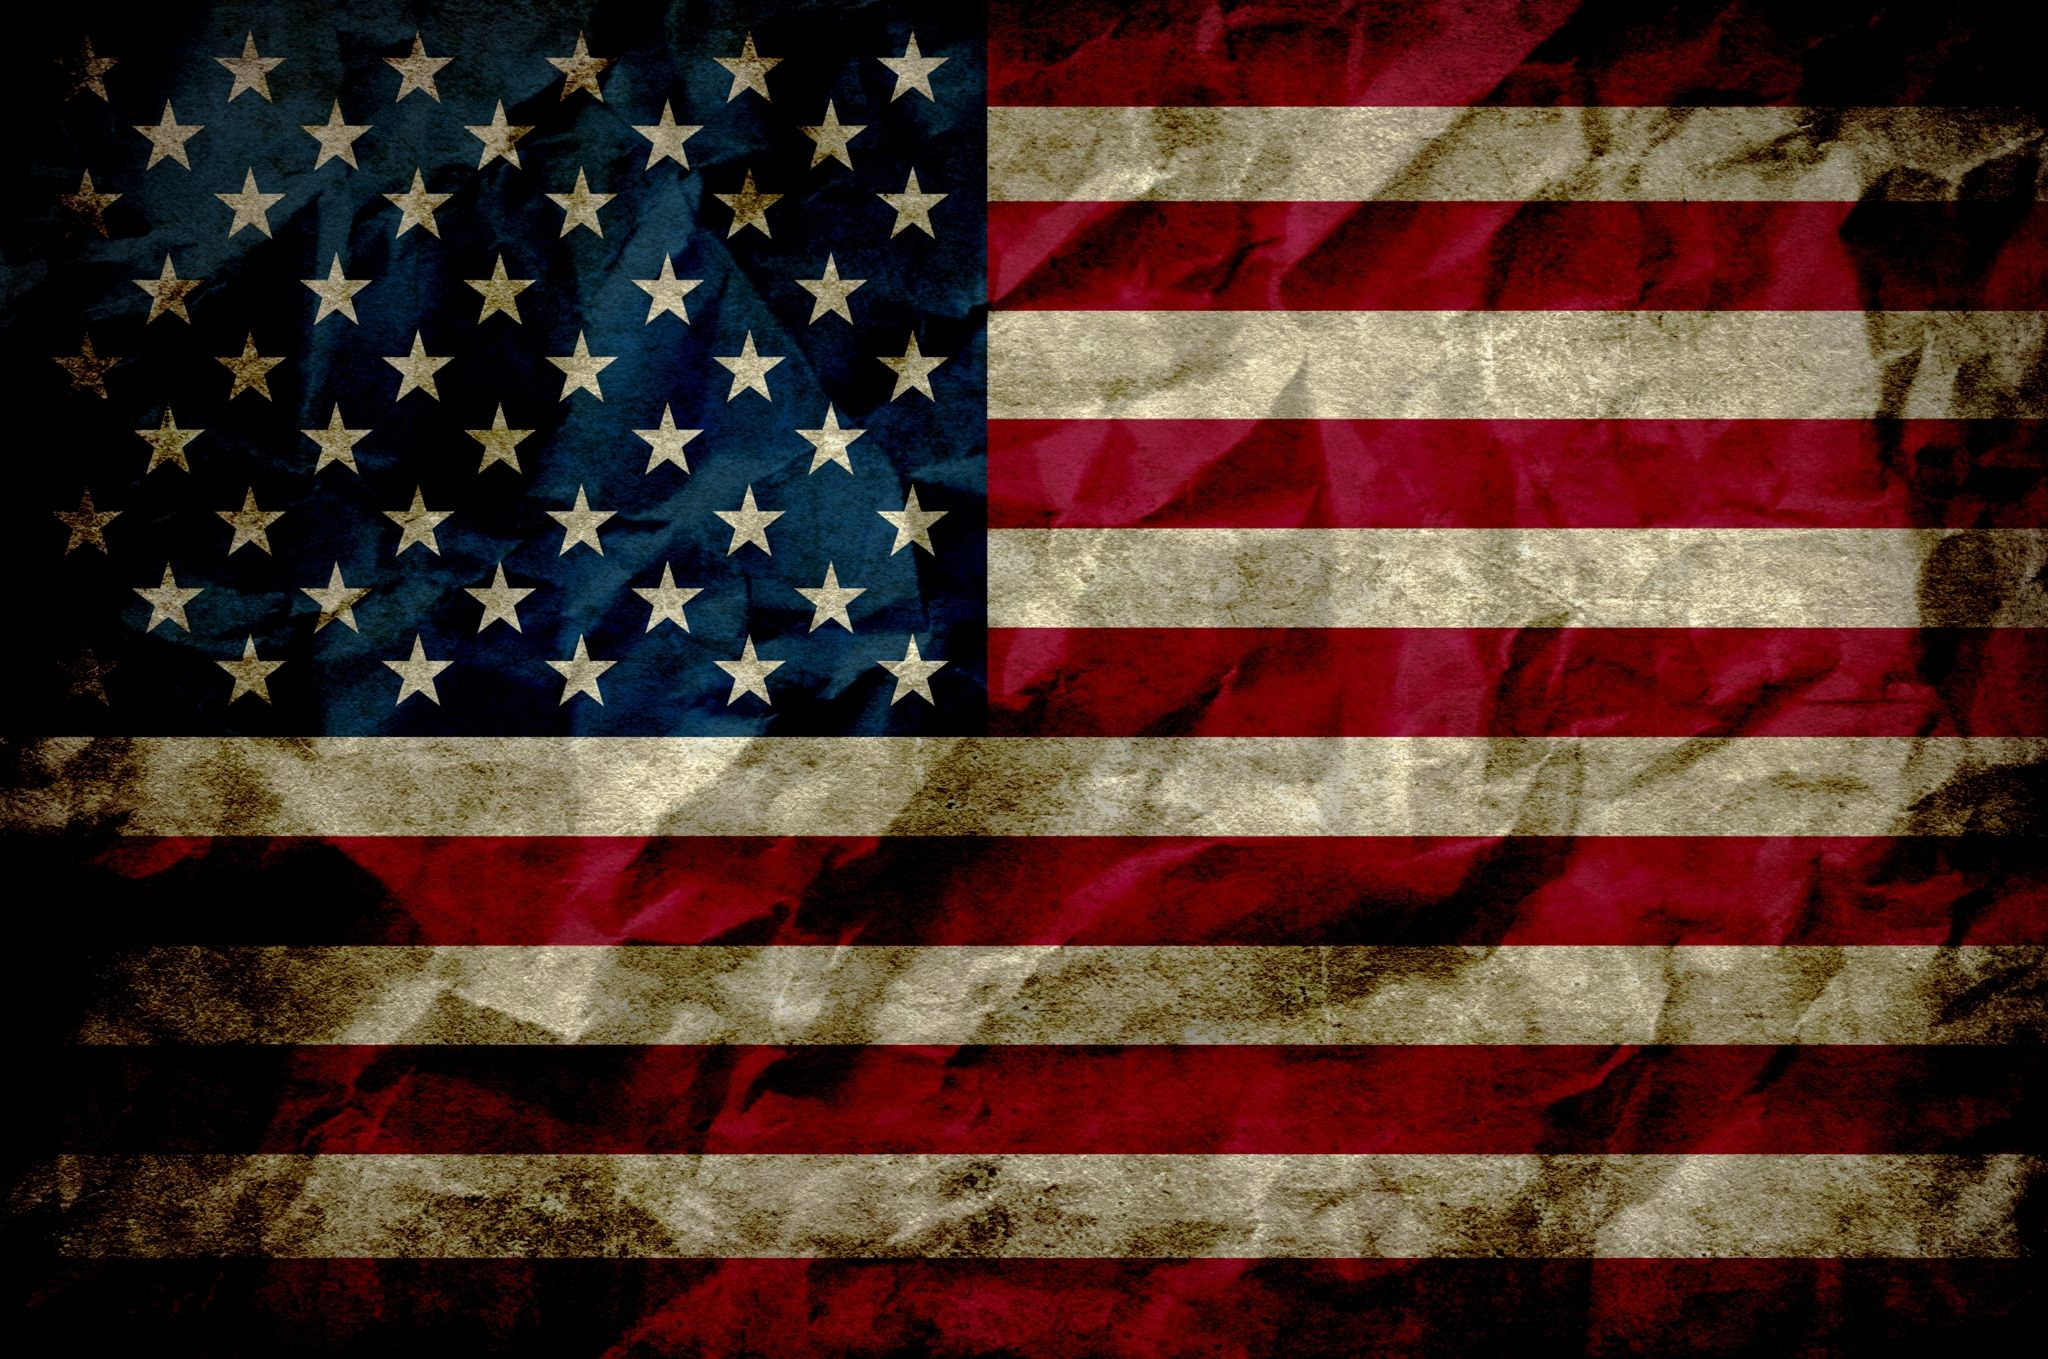 2048x1359 american flag iphone background images | ololoshenka | Pinterest ...